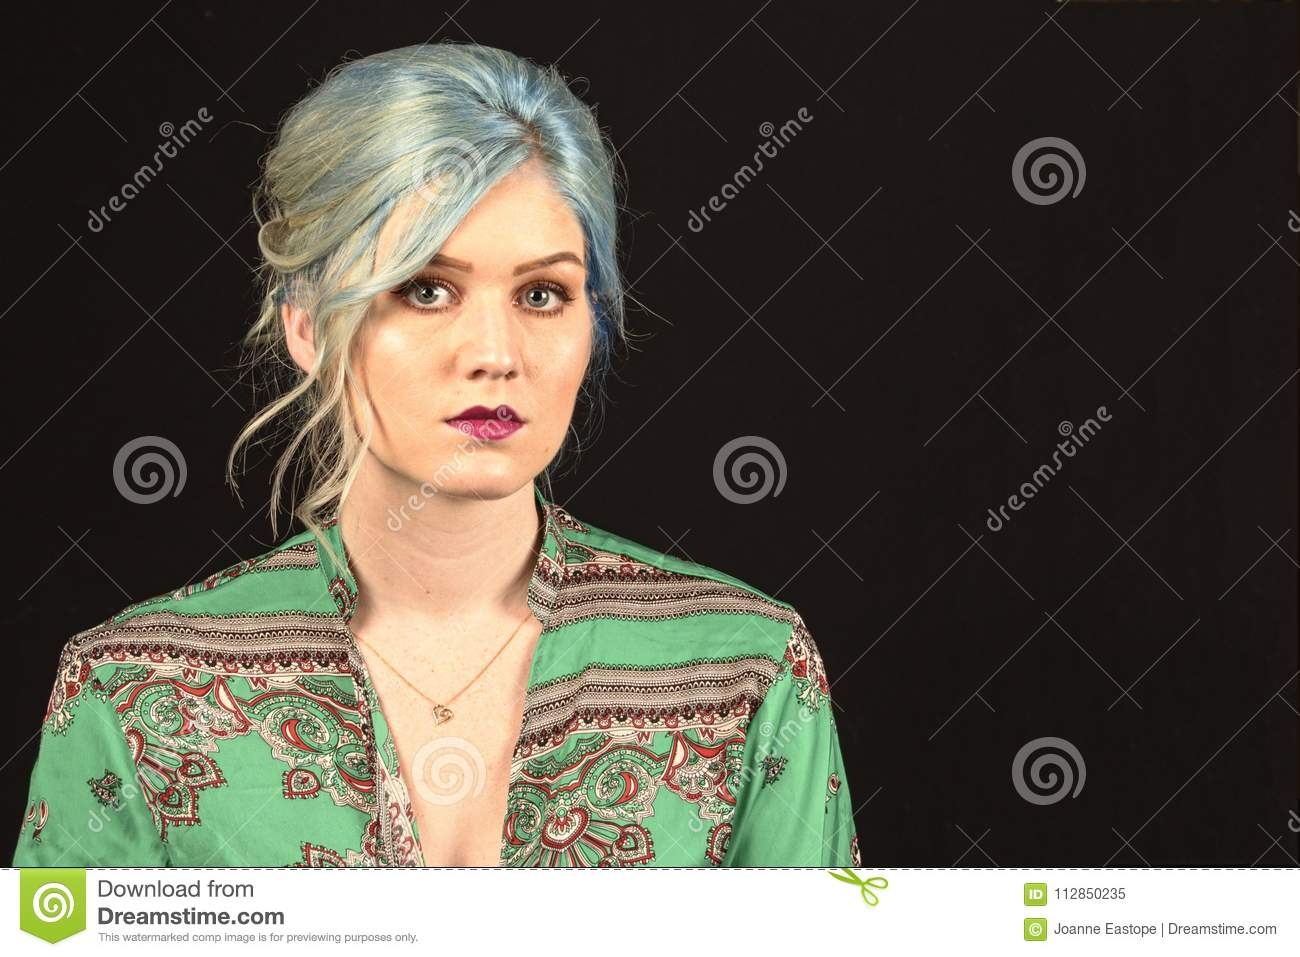 Caucasian female model, Age 22, Blue dyed hair, Red lips, green and red shirt. Isolated on black background. Upper torso. Belly ex